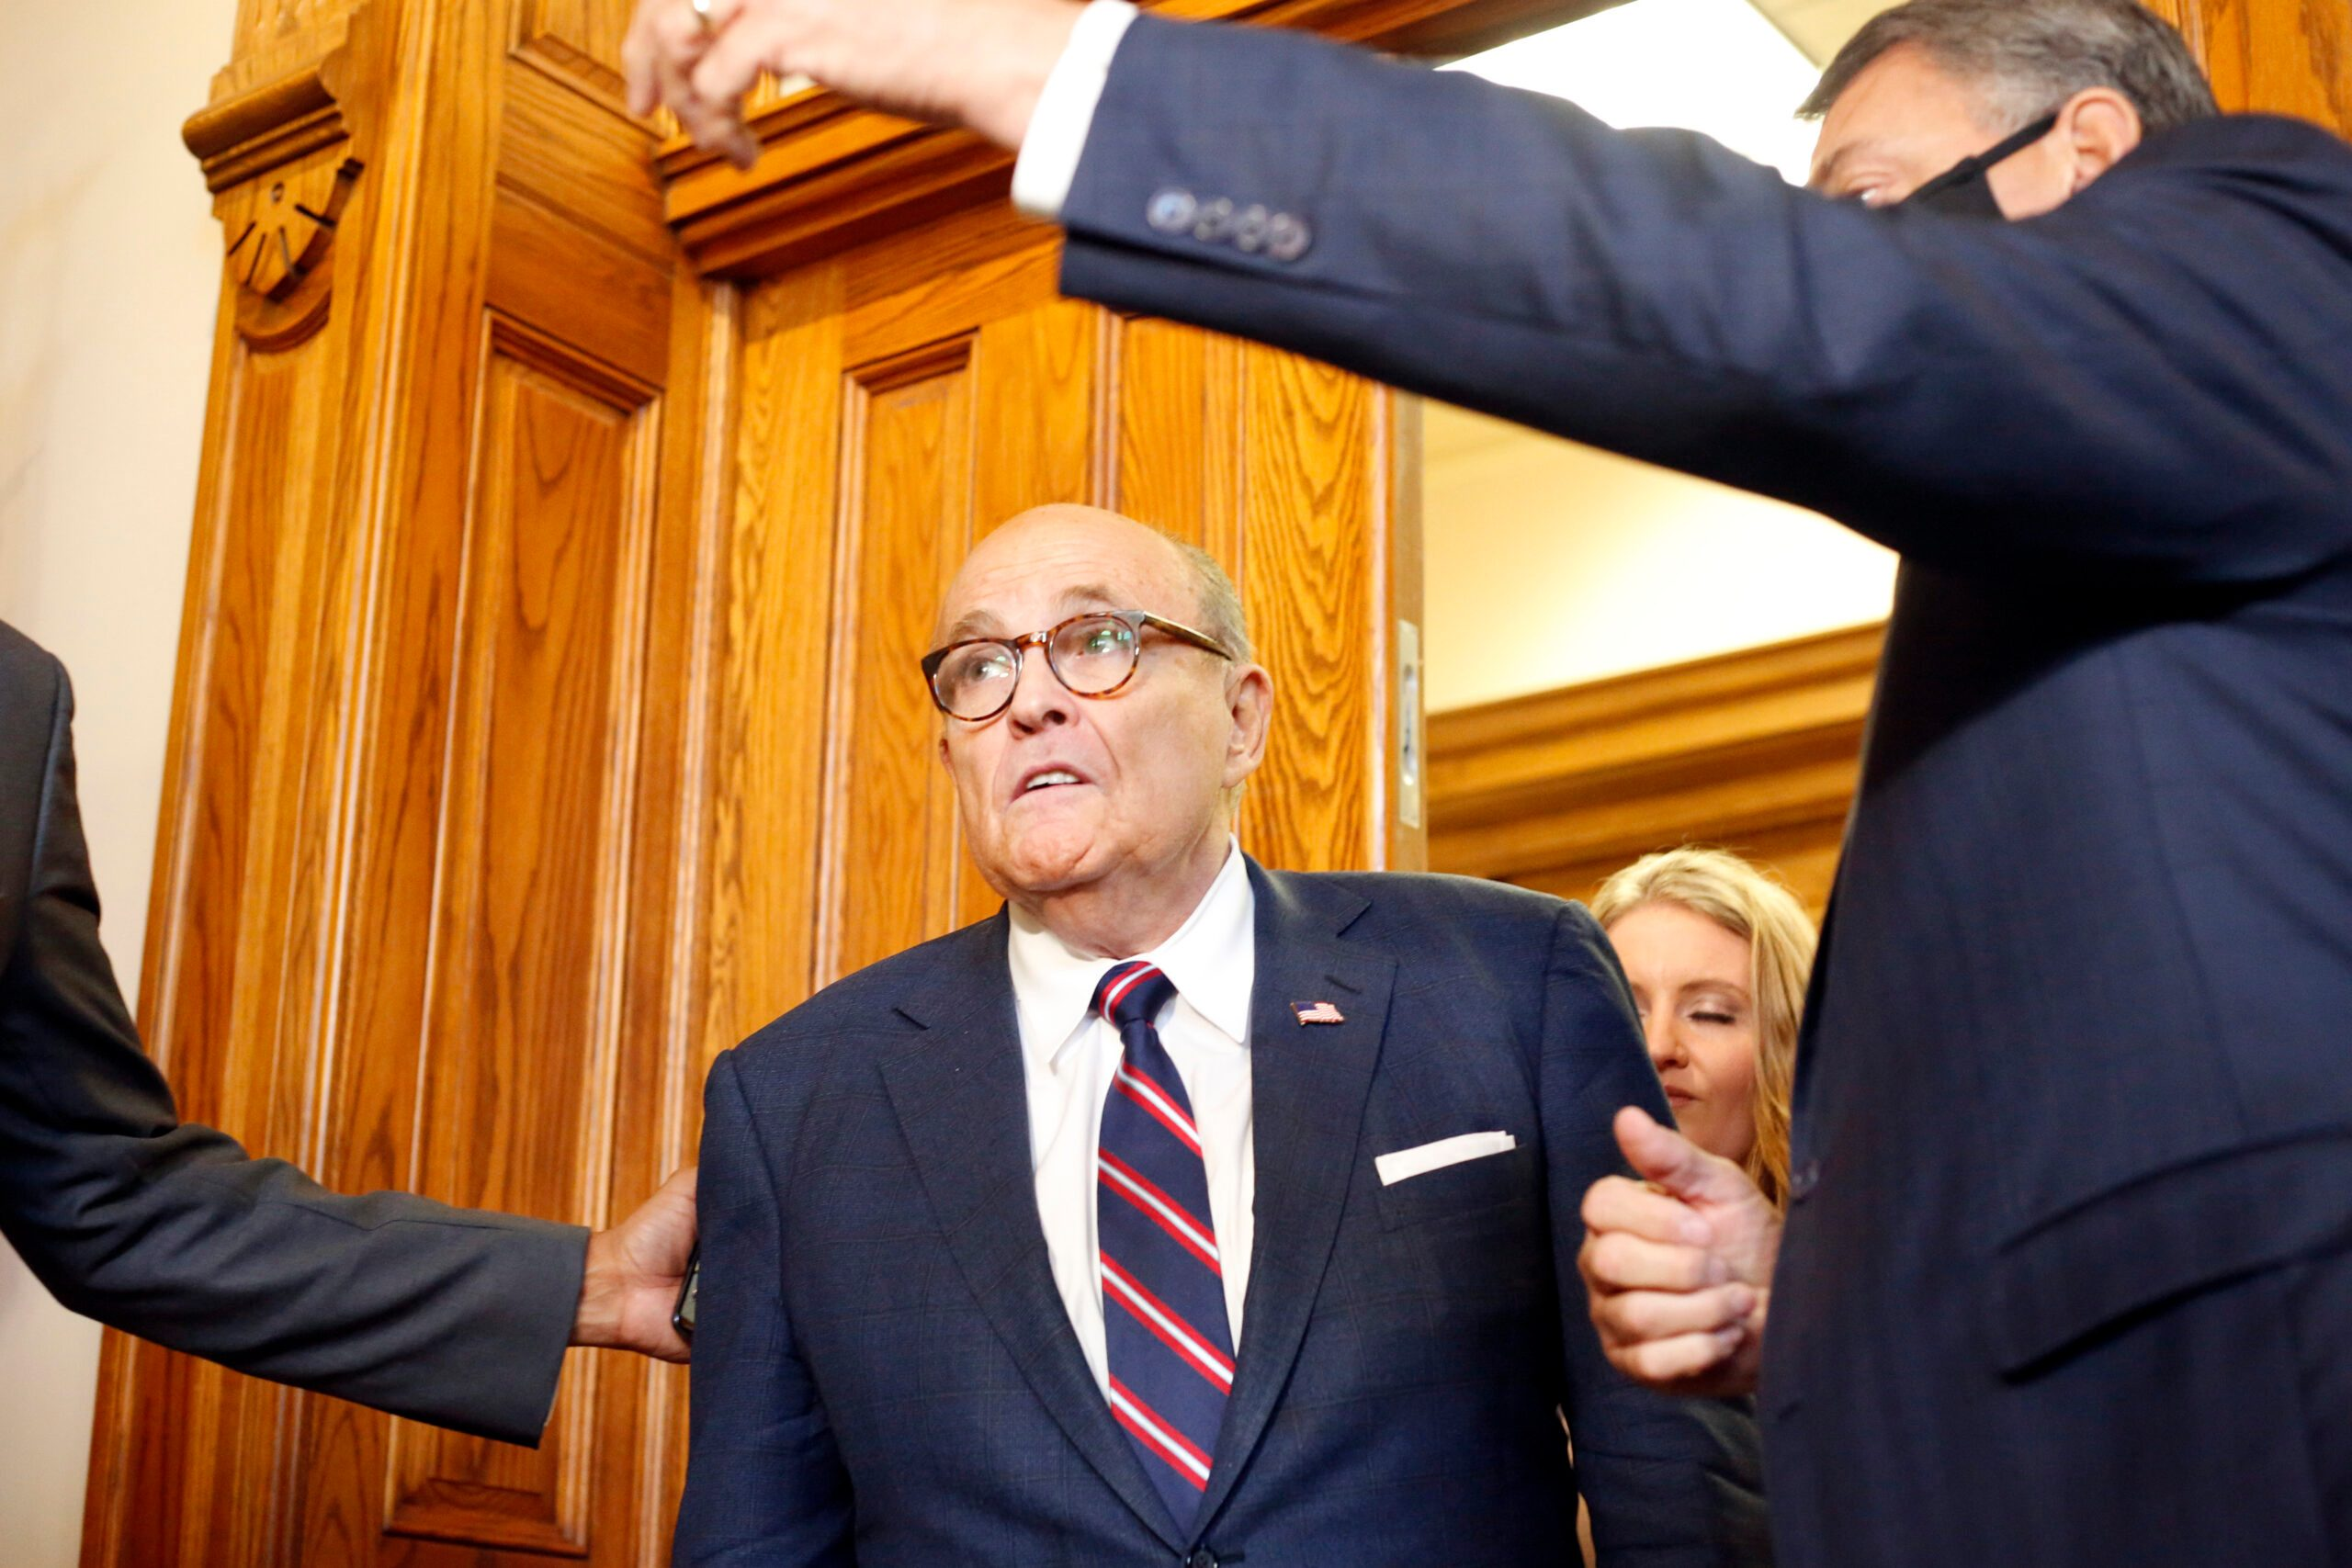 Dominion Voting Systems Sues Giuliani over Election Claims - snopes